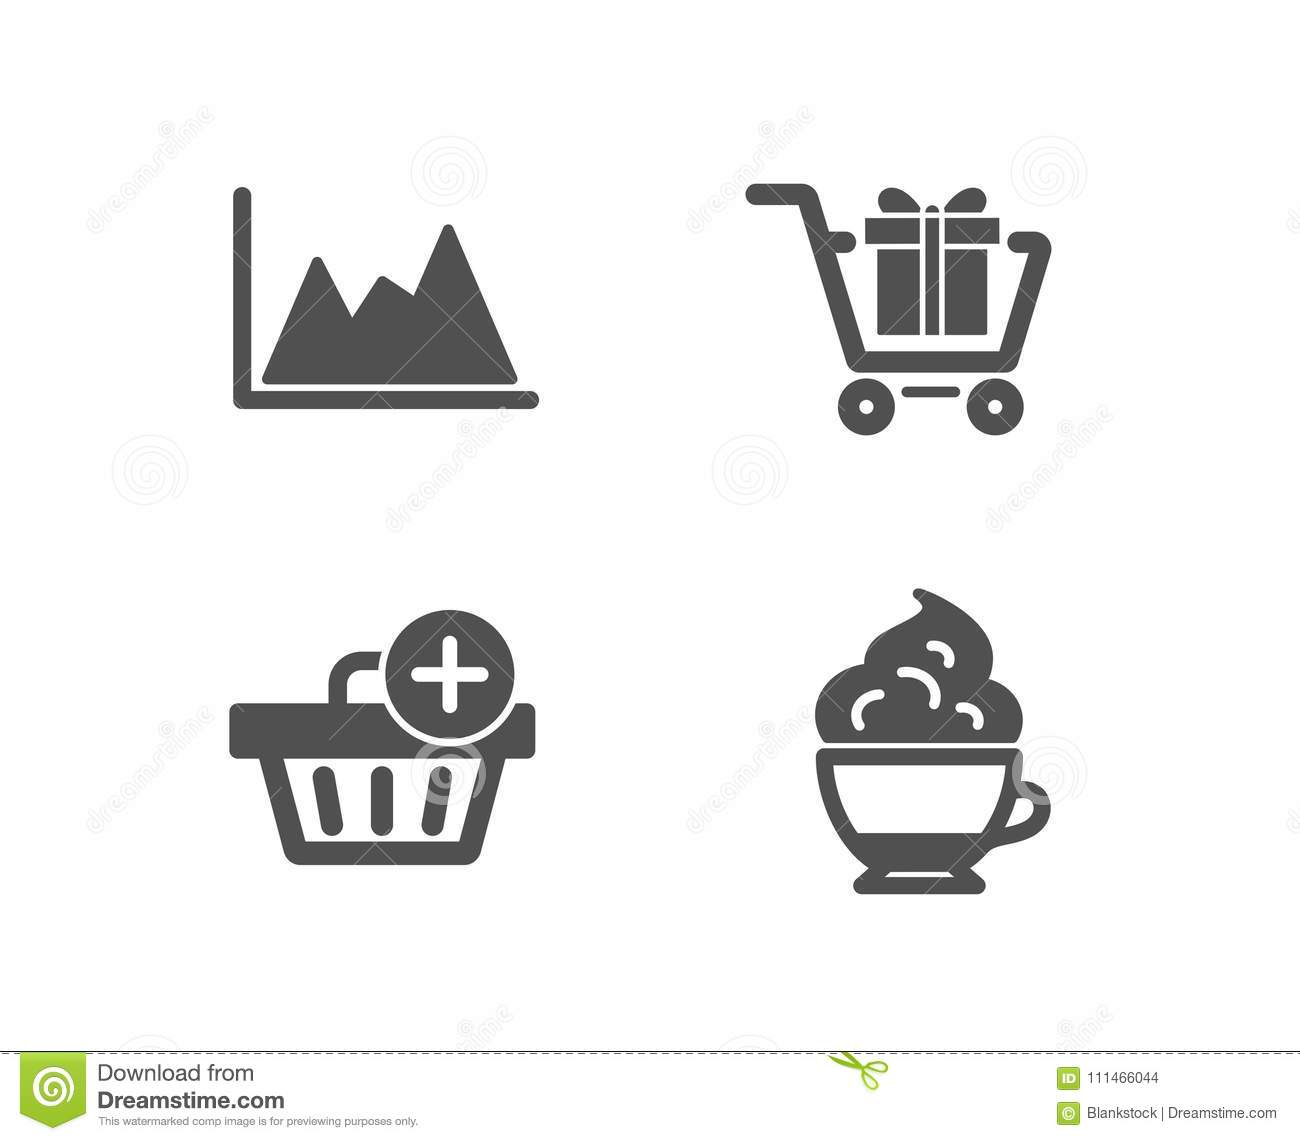 Phenomenal Shopping Cart Add Purchase And Diagram Icons Cappuccino Cream Sign Wiring 101 Swasaxxcnl